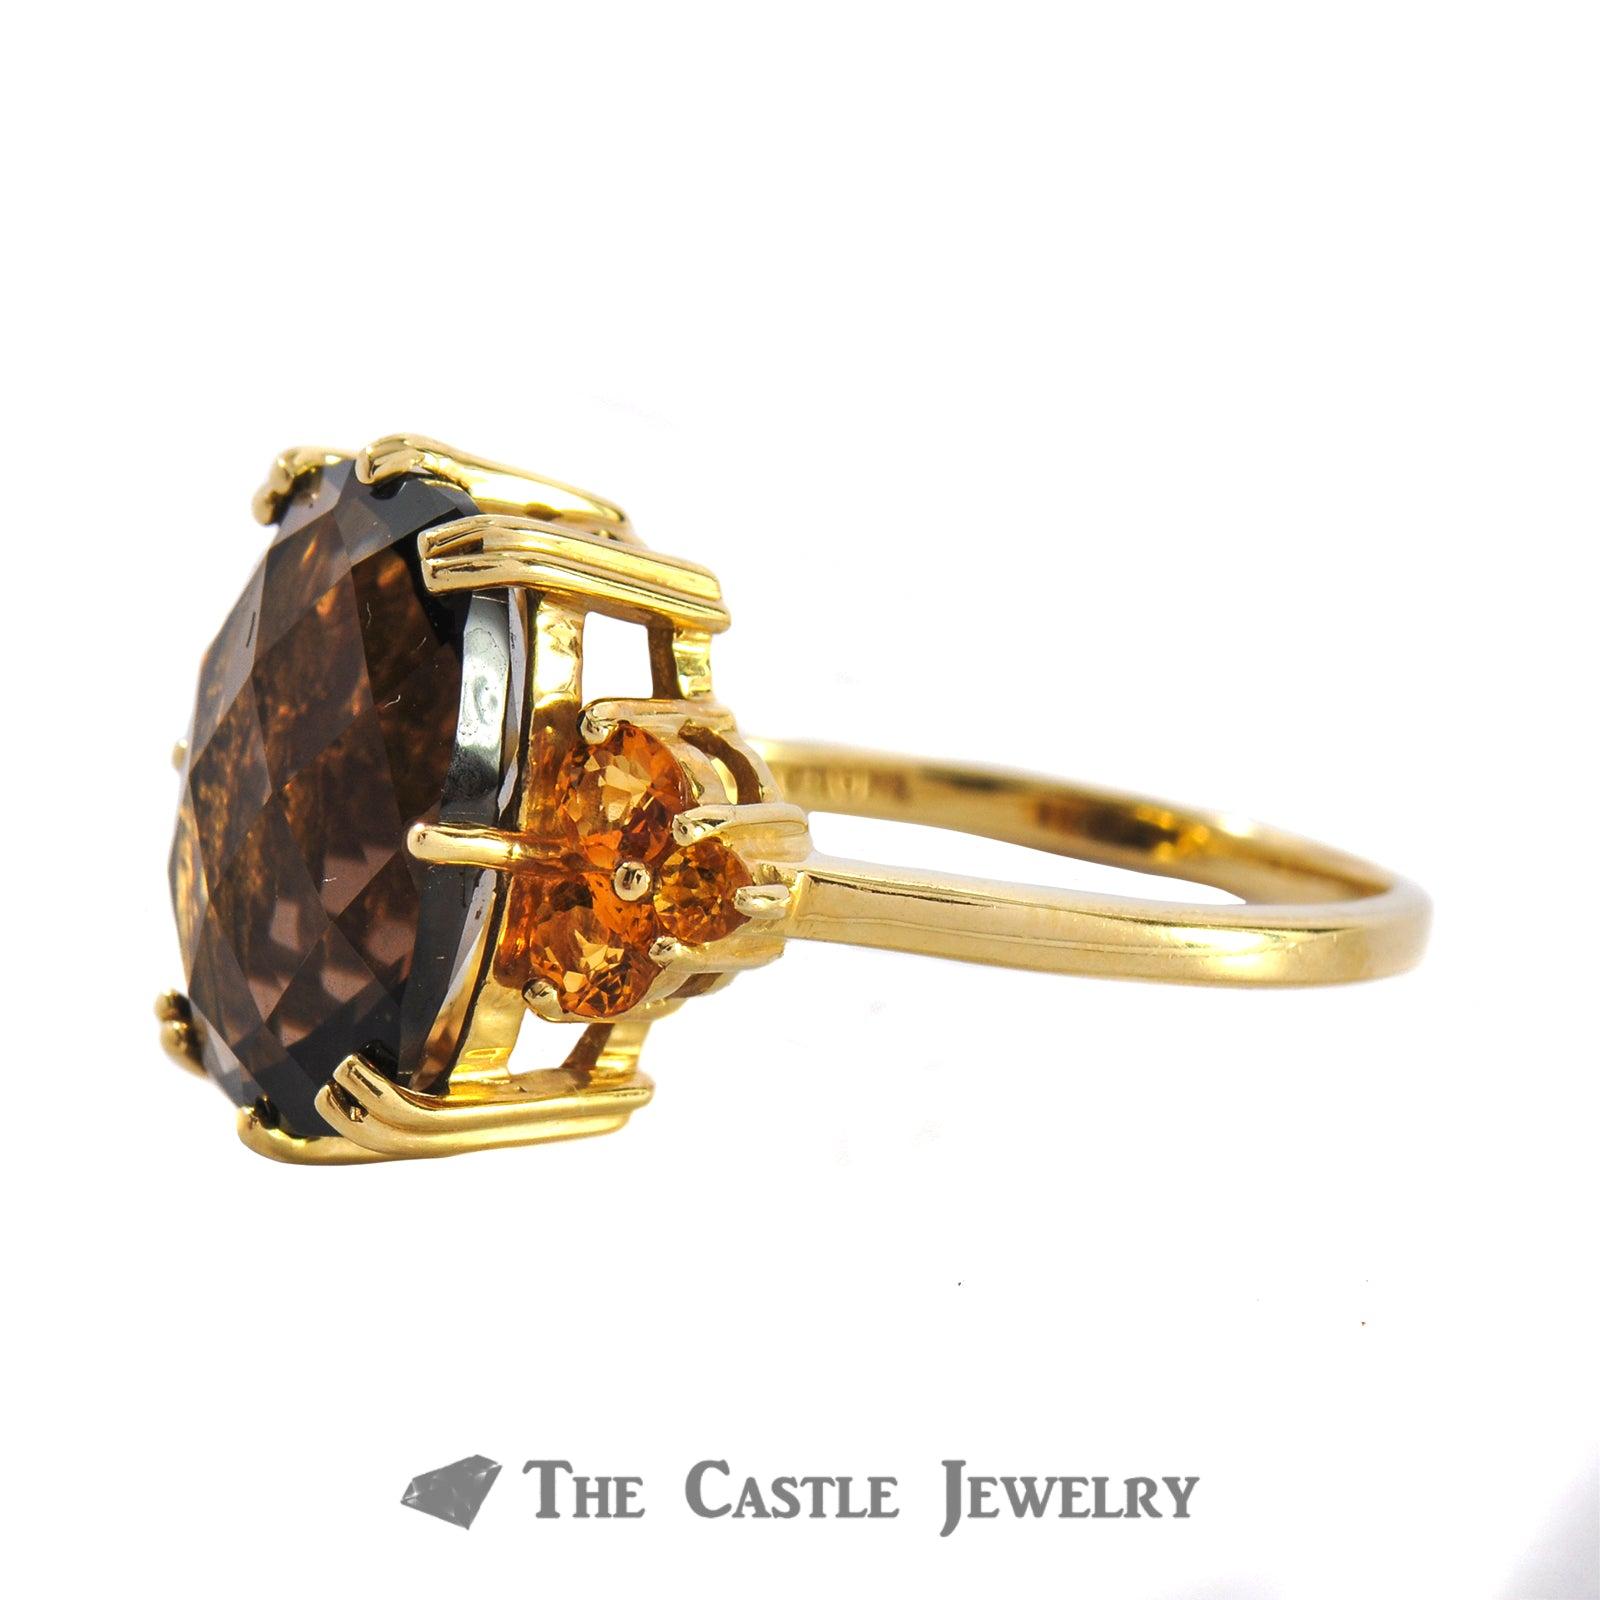 Fantasy Cut Smoky Quartz And Citrine Ring In 14K Yellow Gold-1